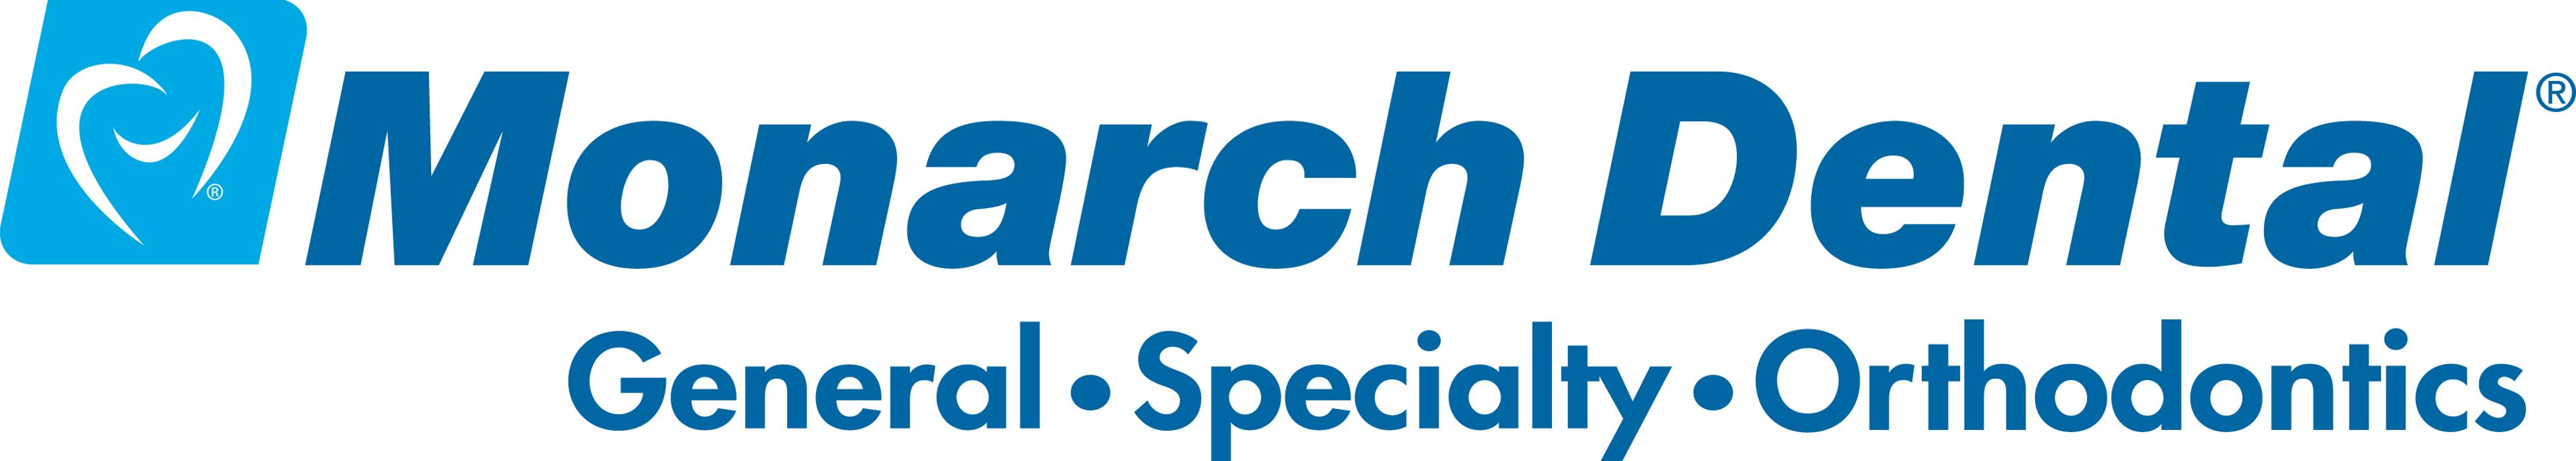 Monarch Dental - San Antonio, TX